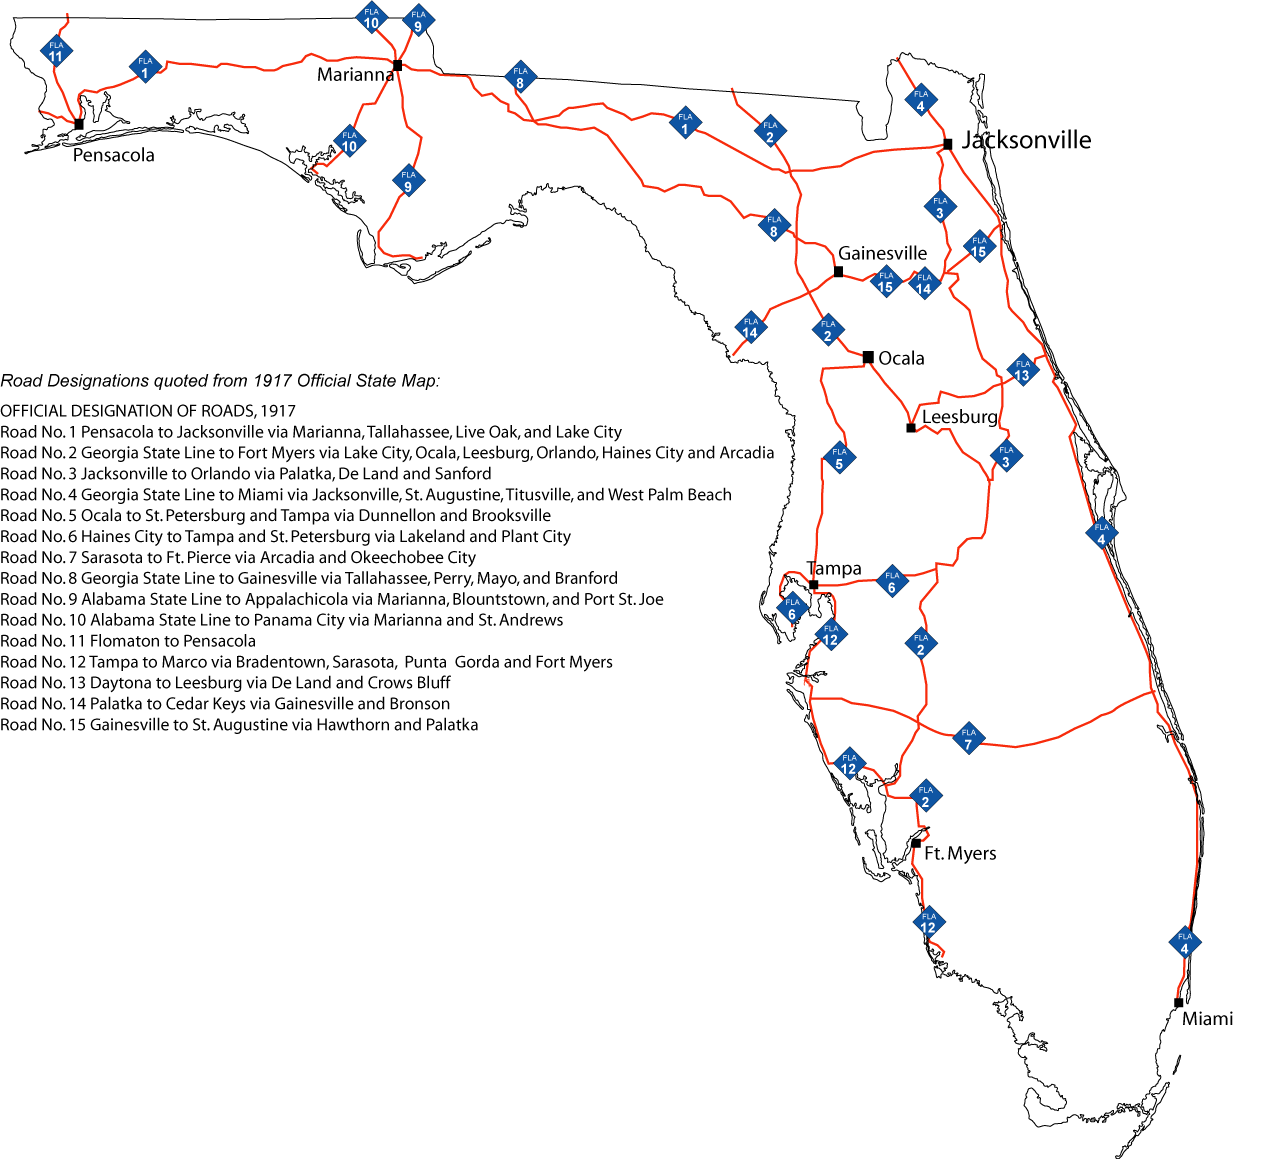 Florida Primary State Road System